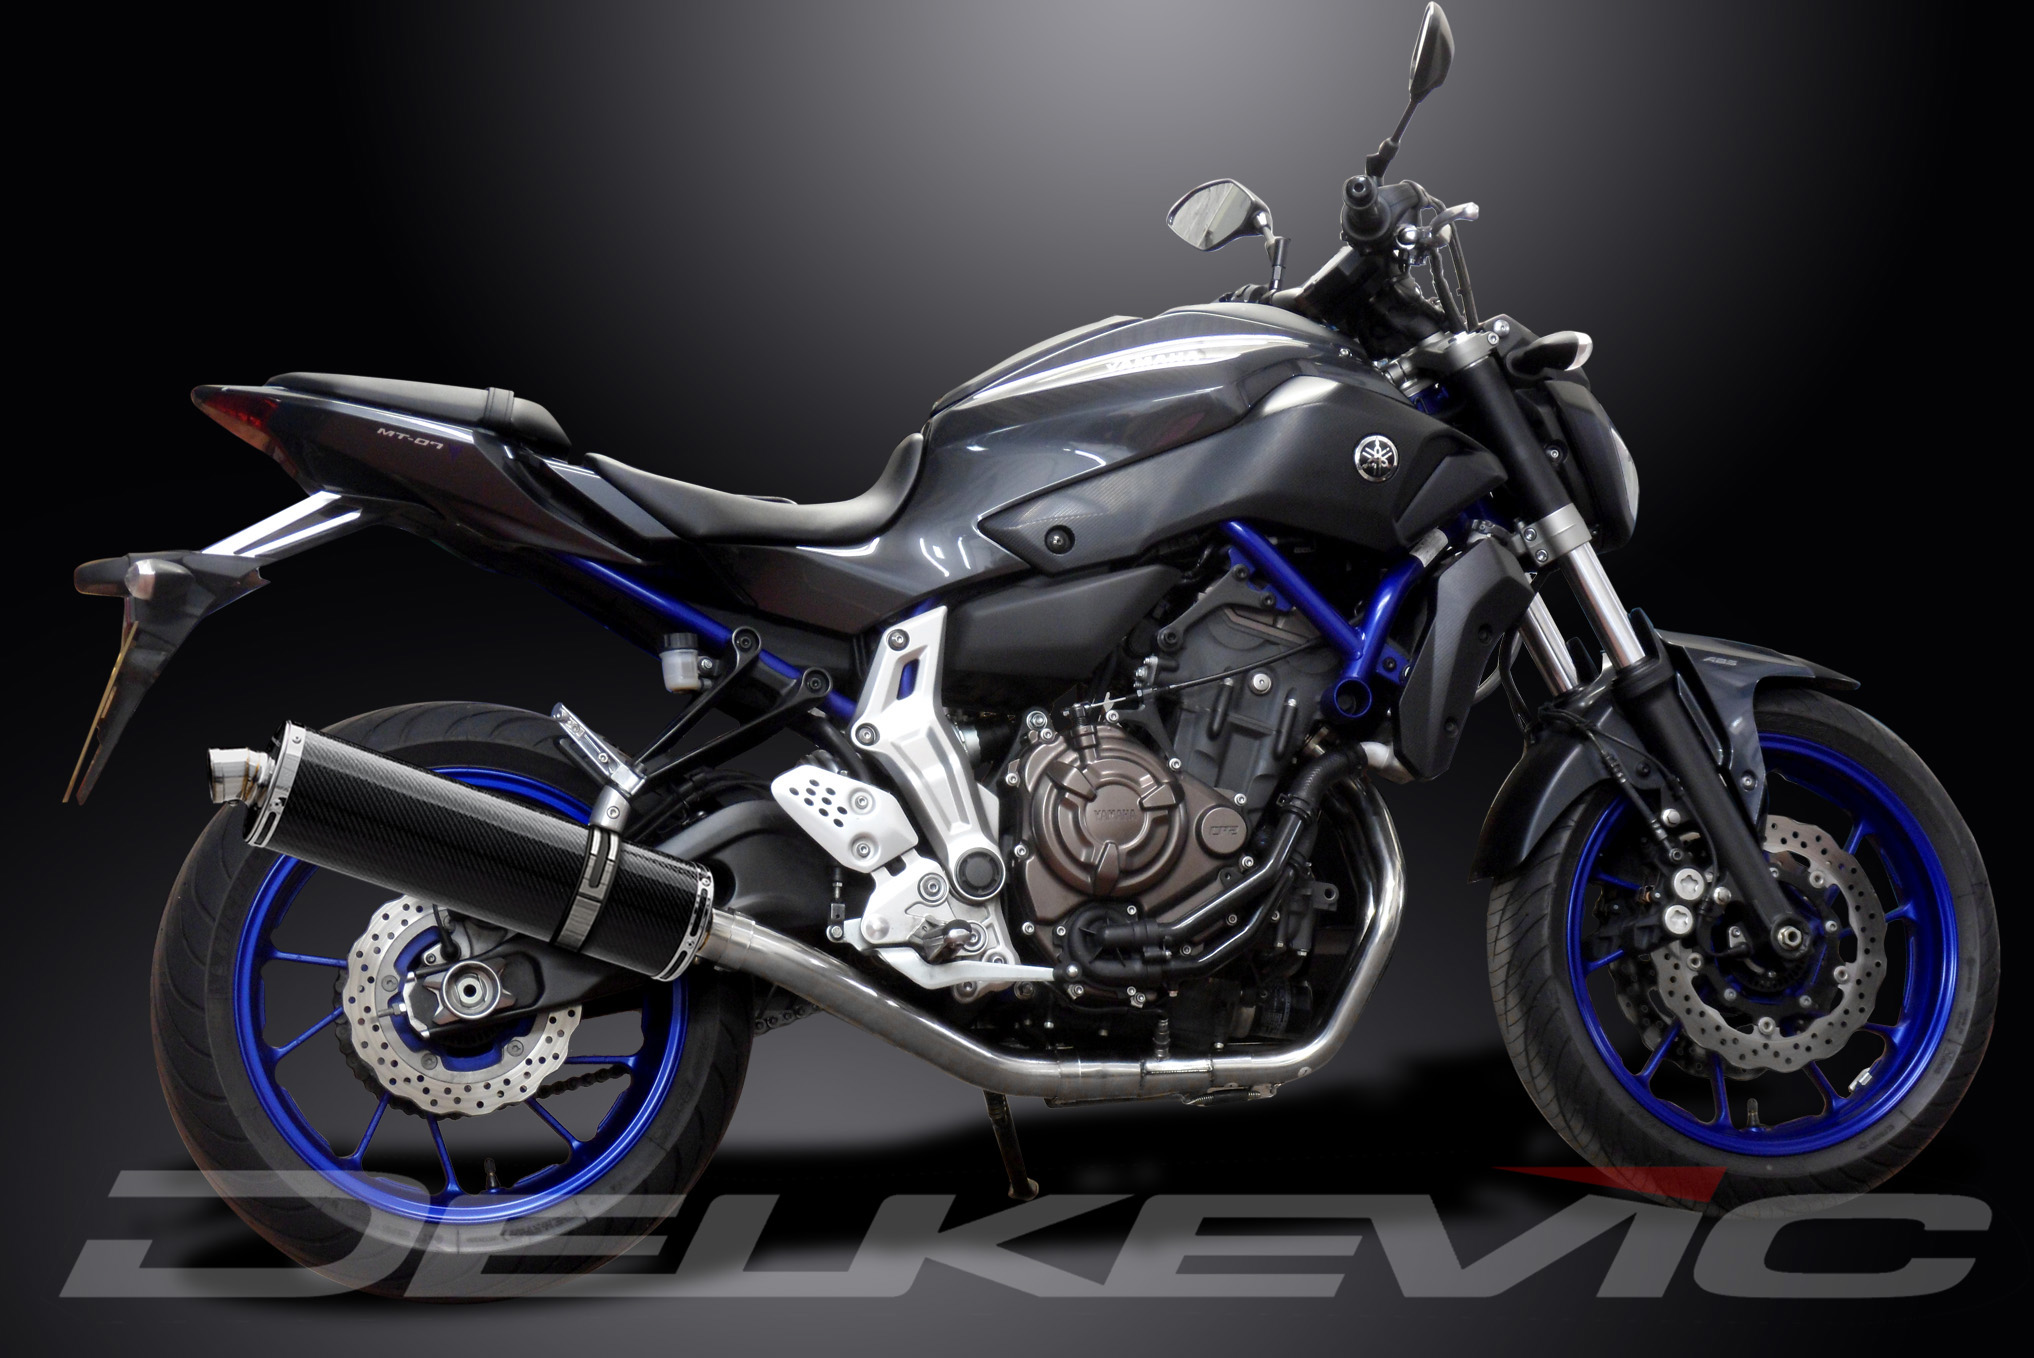 Delkevic exhaust yamaha fz 07 exhaust the fz 07 forum for Yamaha exhaust systems